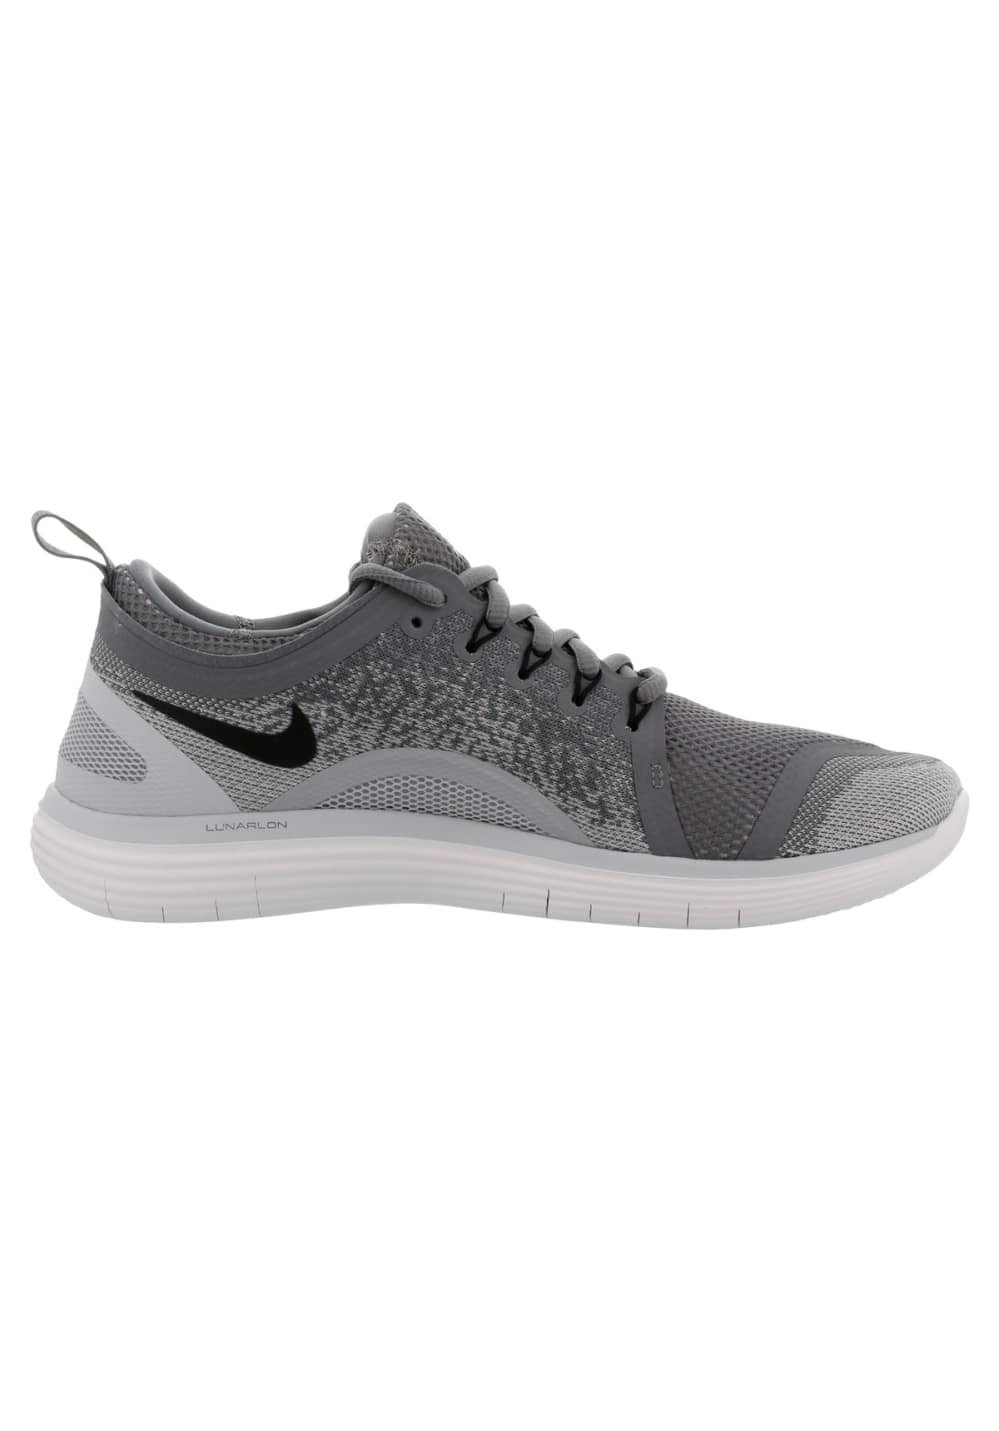 Next. -60%. Nike. Free RN Distance 2 - Running shoes for Women. Regular  Price  Save 60% ... 1dc745e38